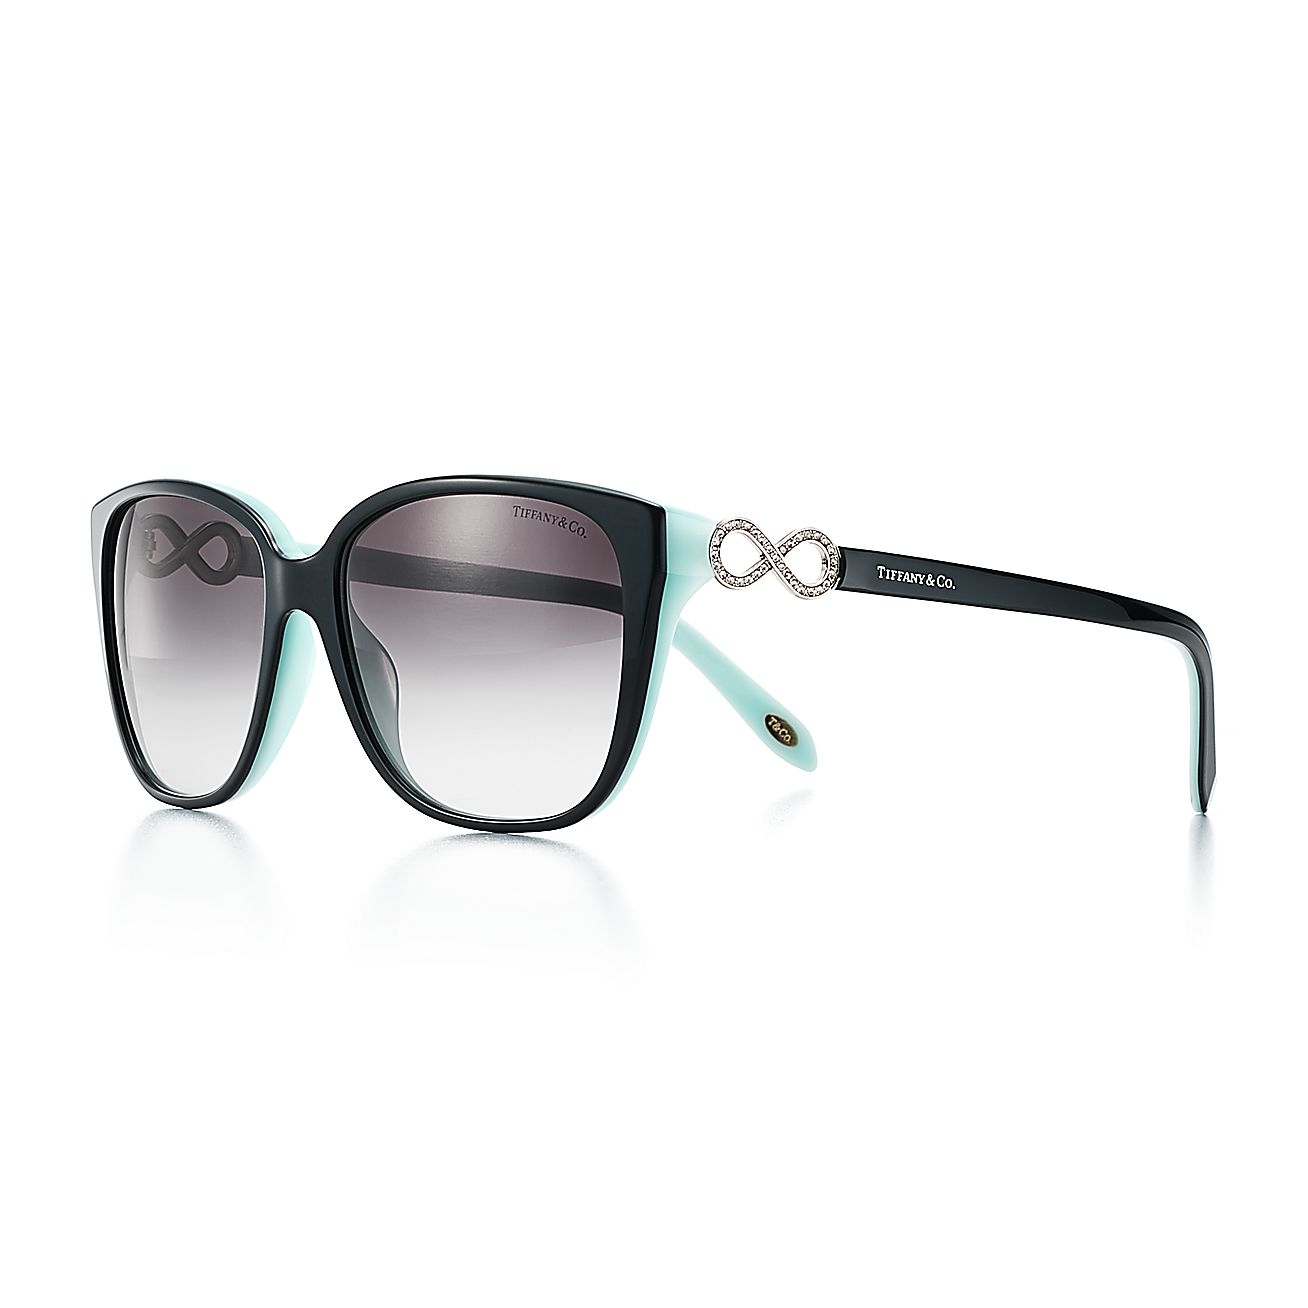 a66f01cdc662 Tiffany Infinity square sunglasses in black and Tiffany Blue® acetate.